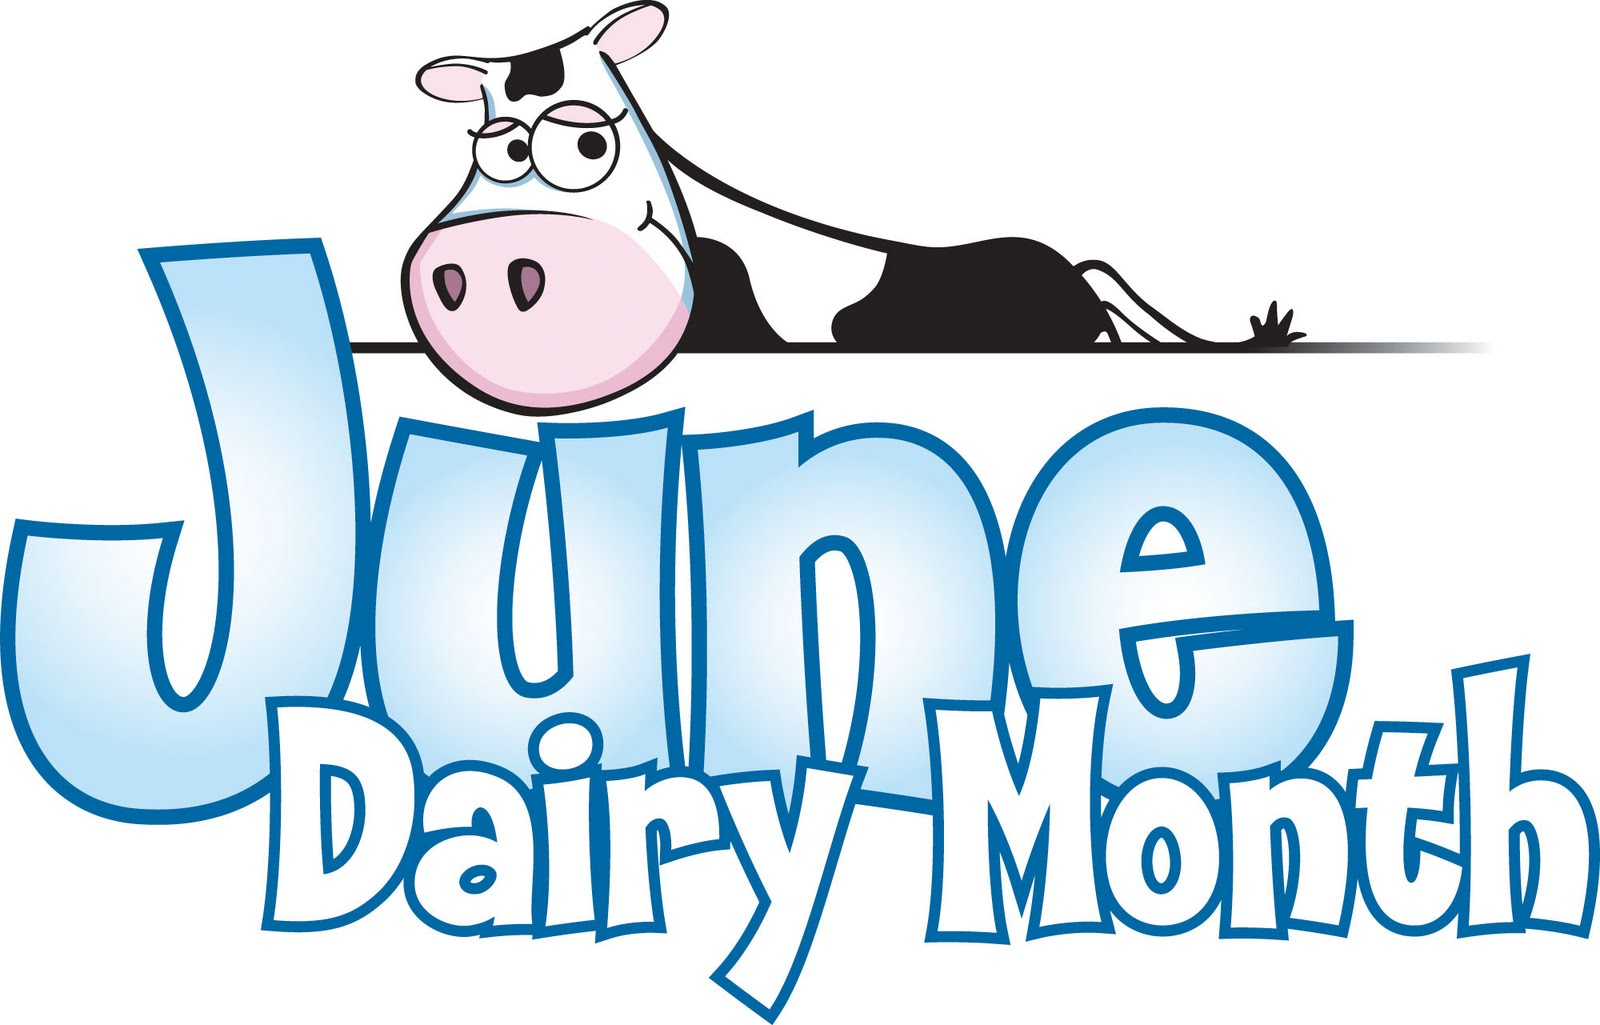 Celebrating Dairy Month In June